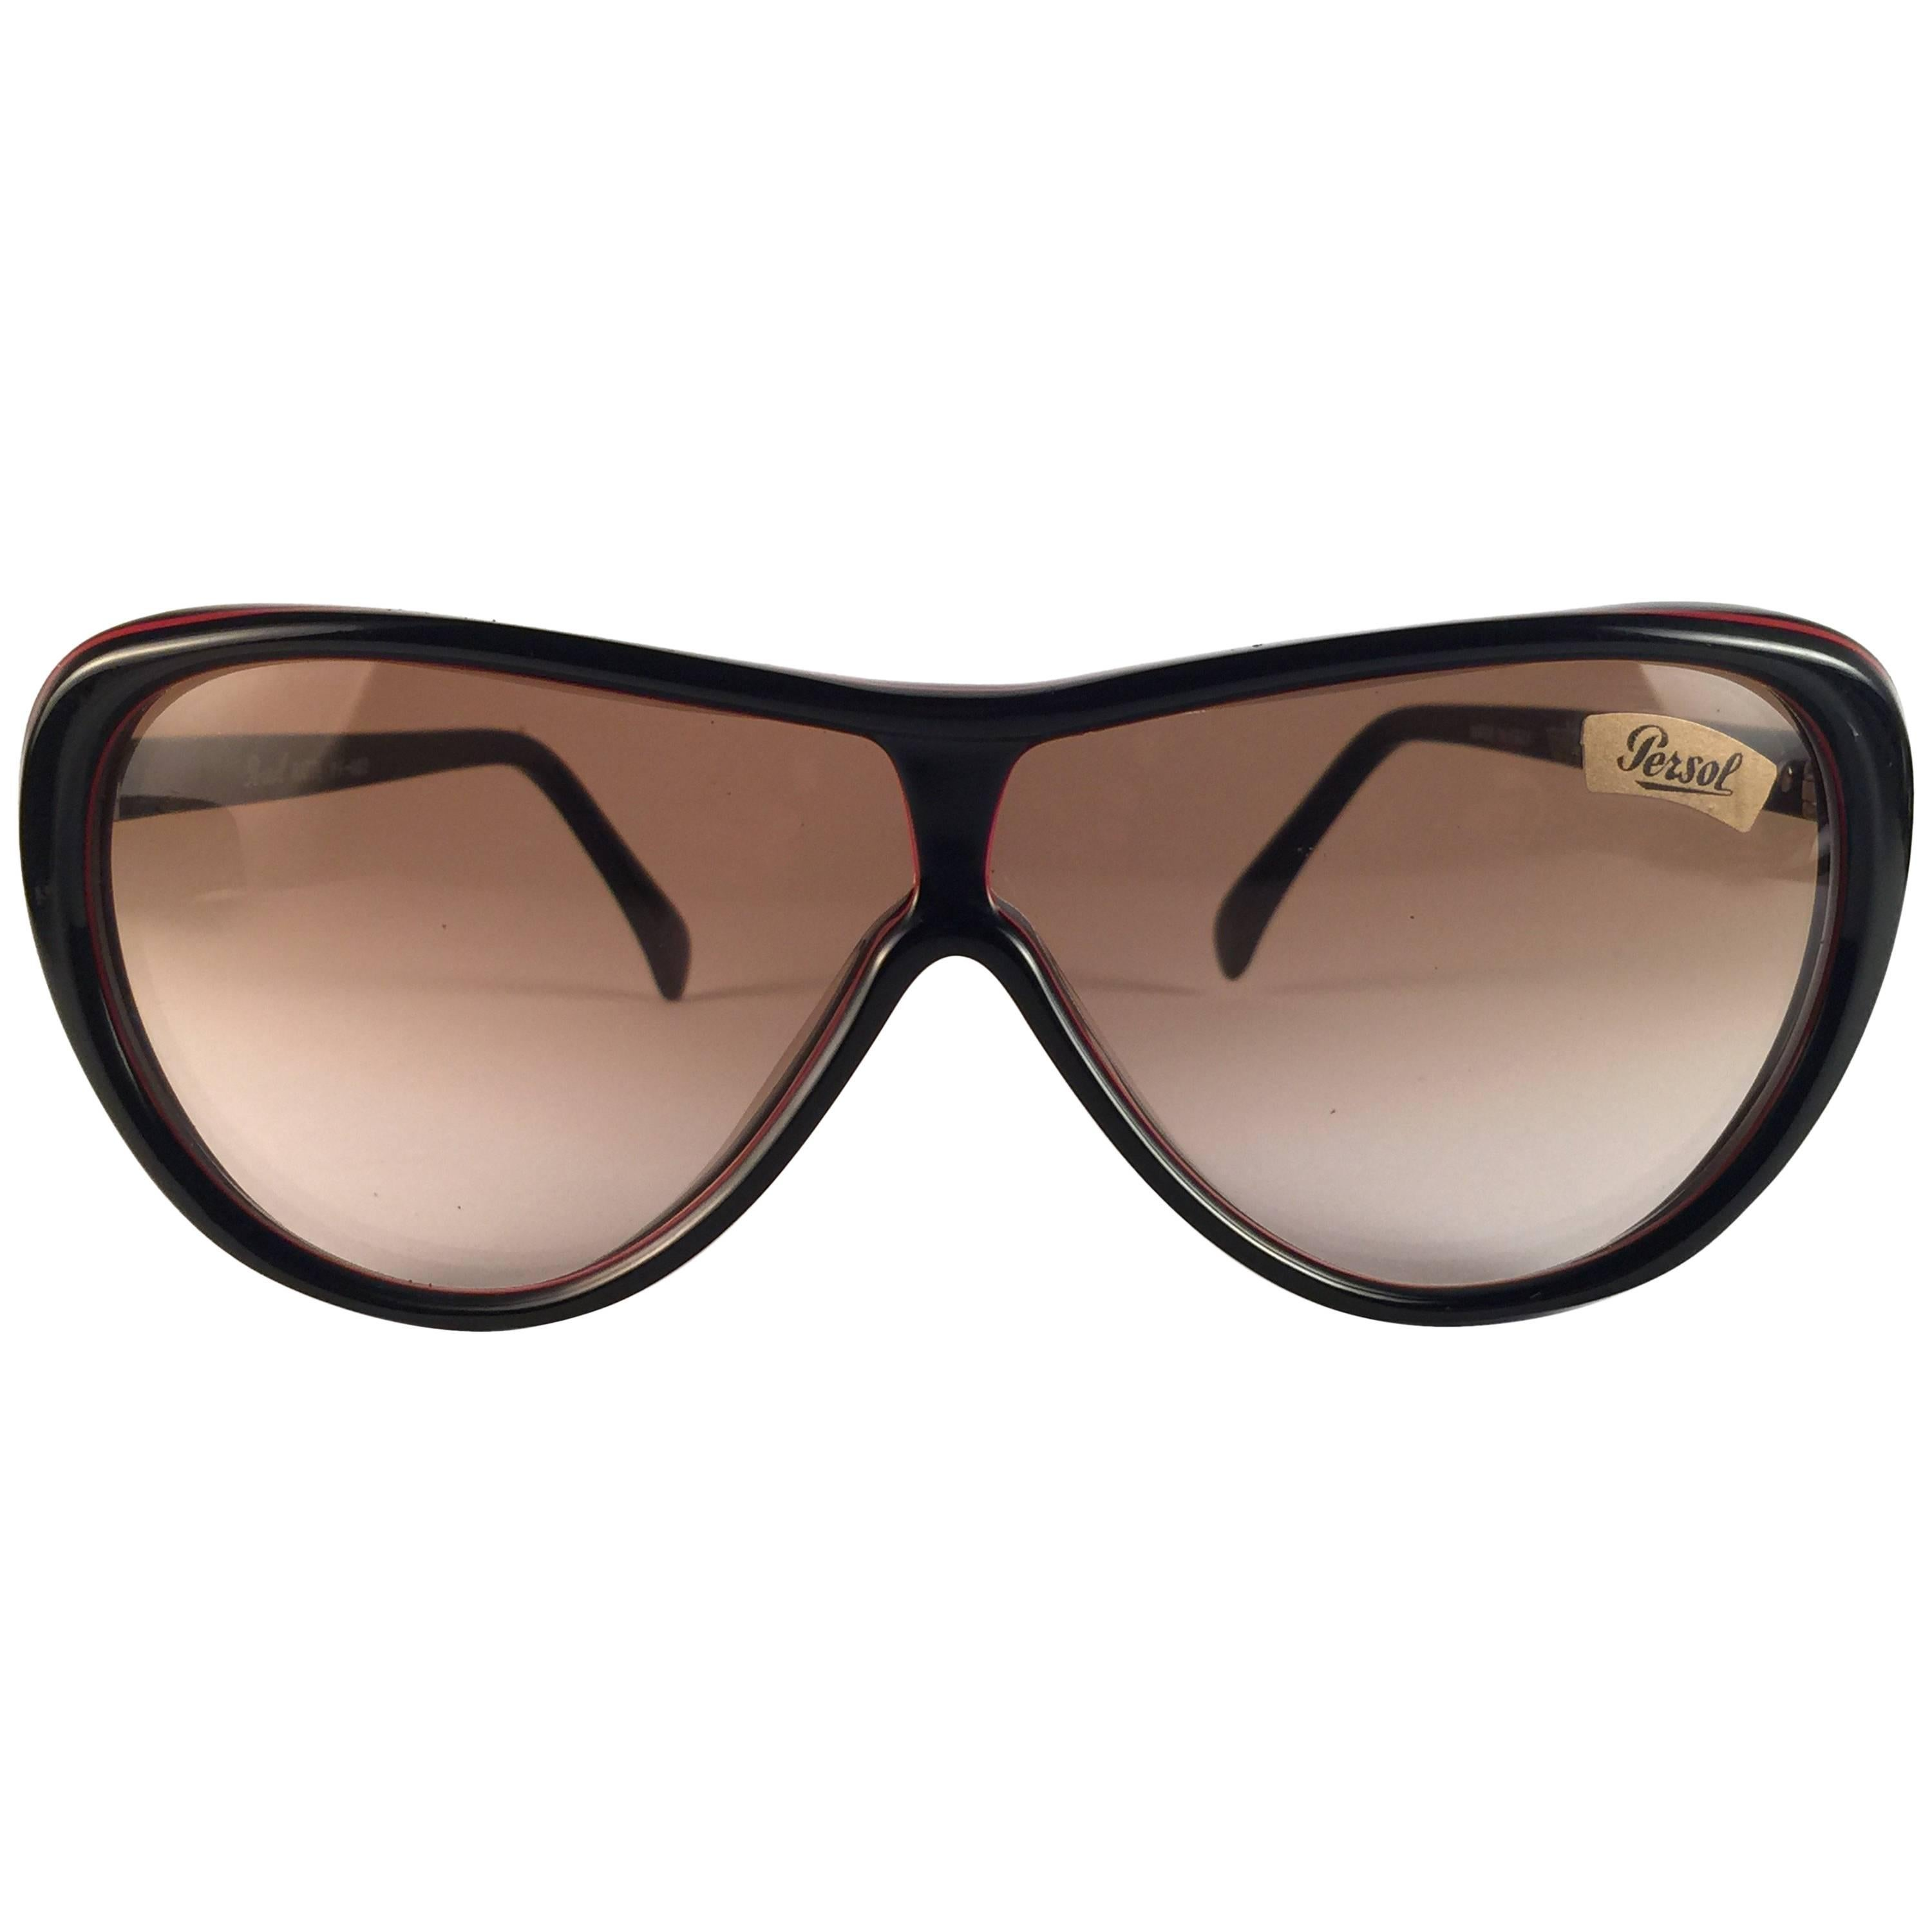 5914f683f6 New Vintage Persol Ratti Pininfarina Red and Black Made in Italy Sunglasses  1980 s For Sale at 1stdibs